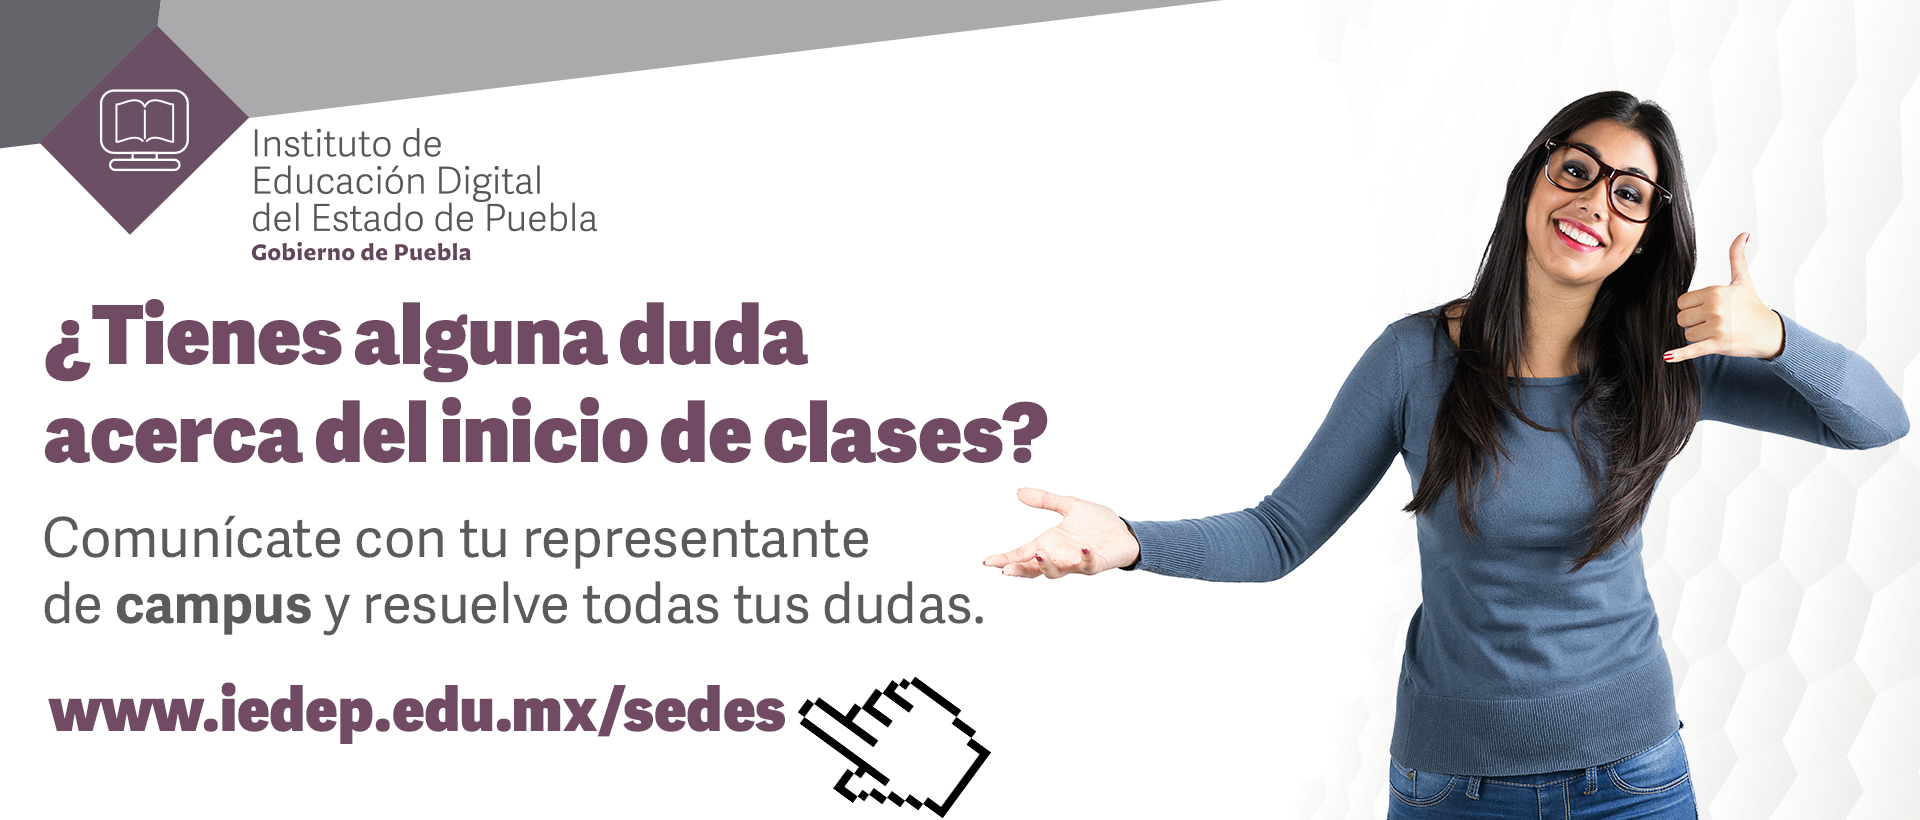 Banner_Dudas_clases_2020.png